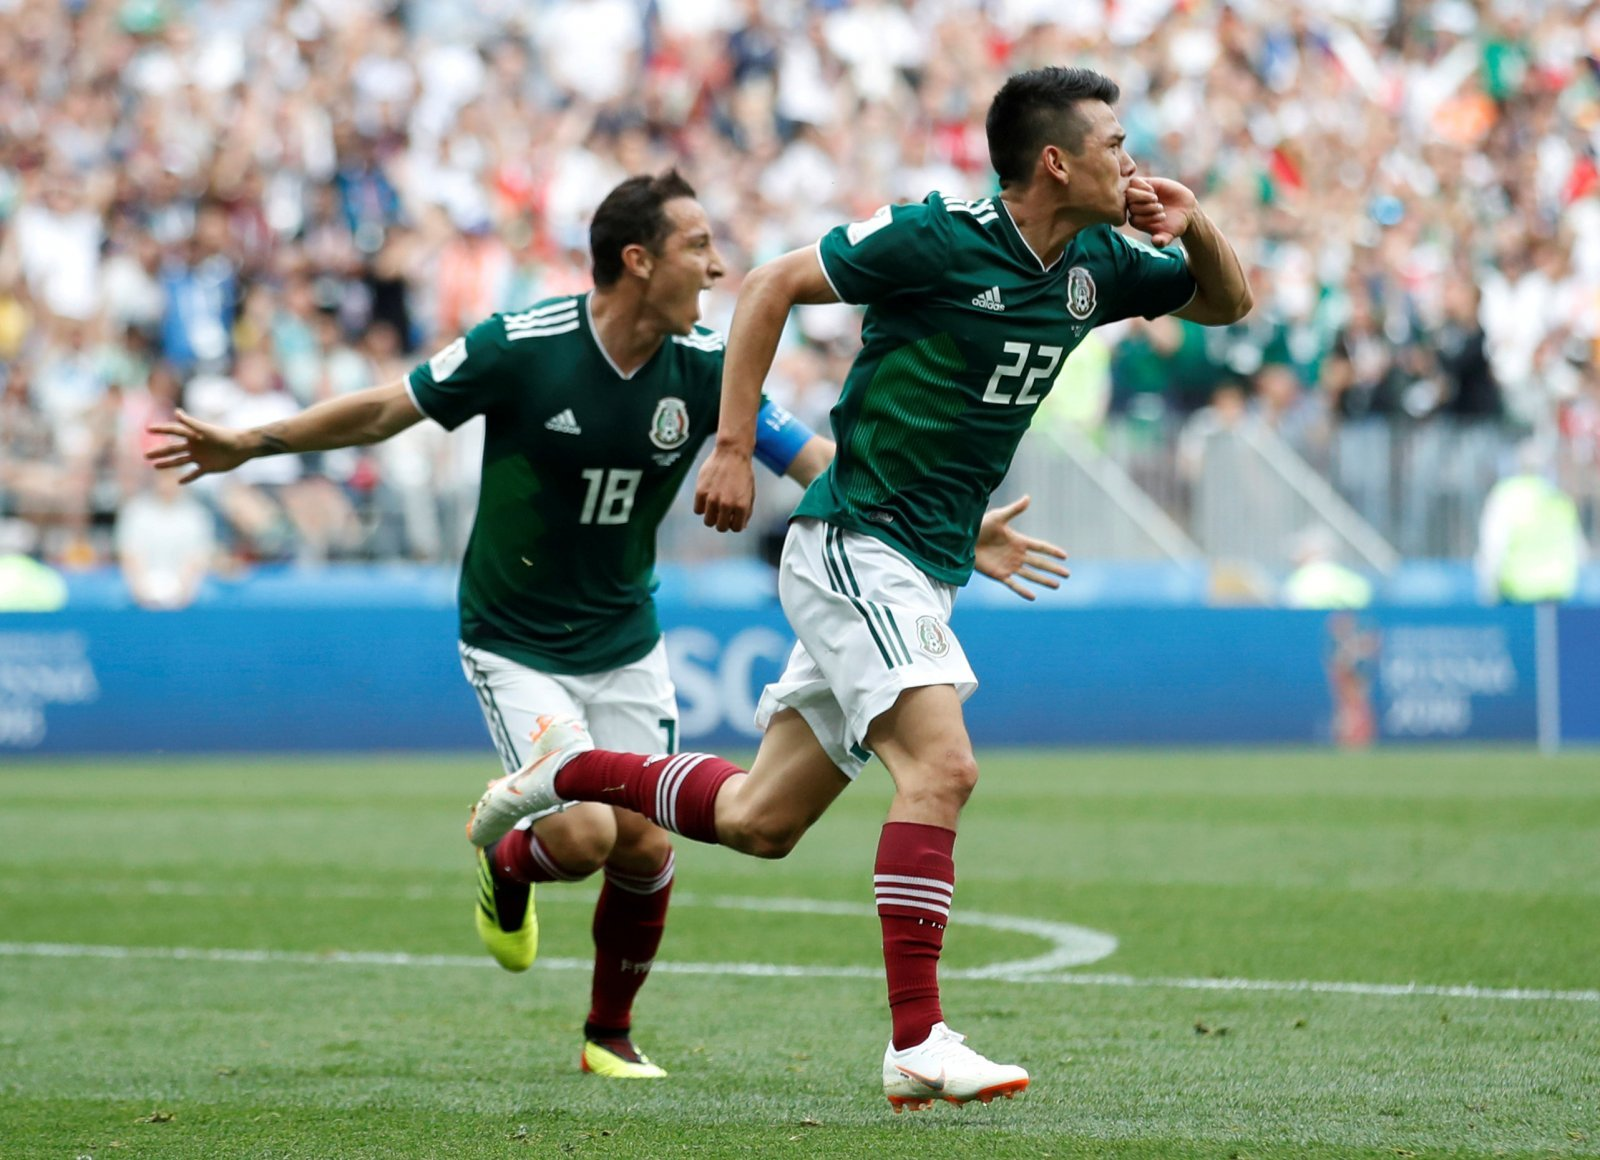 If Eden Hazard joins Real Madrid, Maurizio Sarri must sign Hirving Lozano to replace him